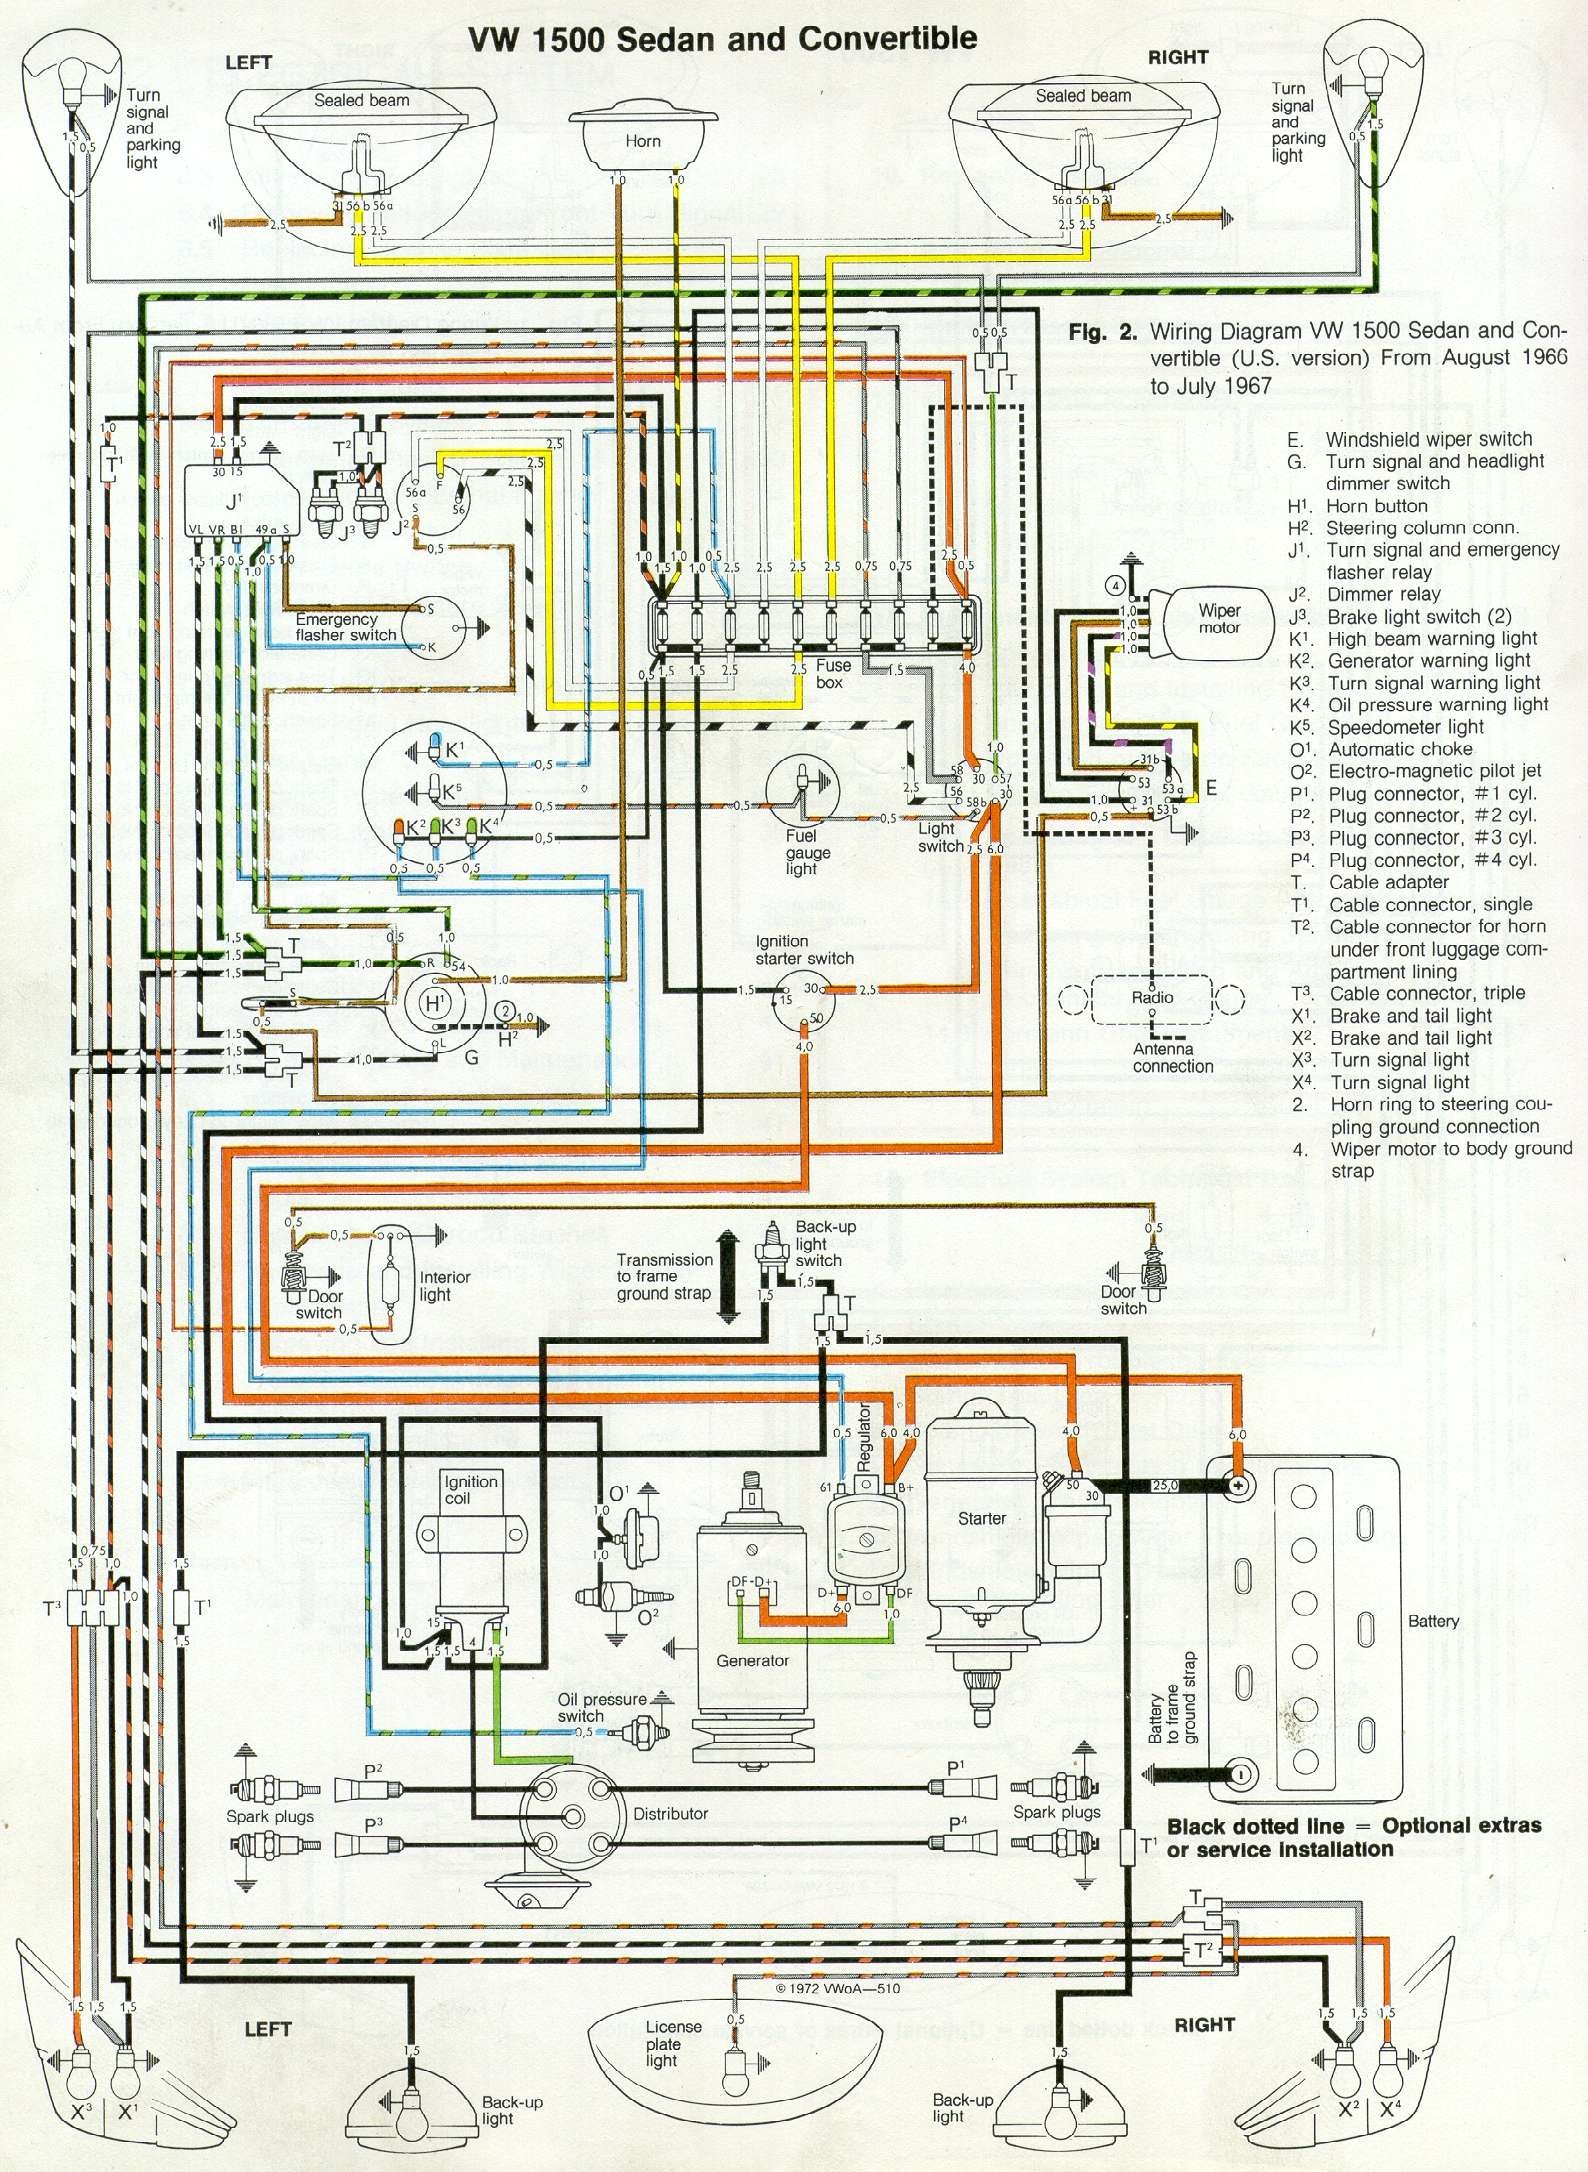 vintage vw wiring harness simple wiring schema wiring harness for choppers 1967 vw wiring harness [ 1588 x 2172 Pixel ]